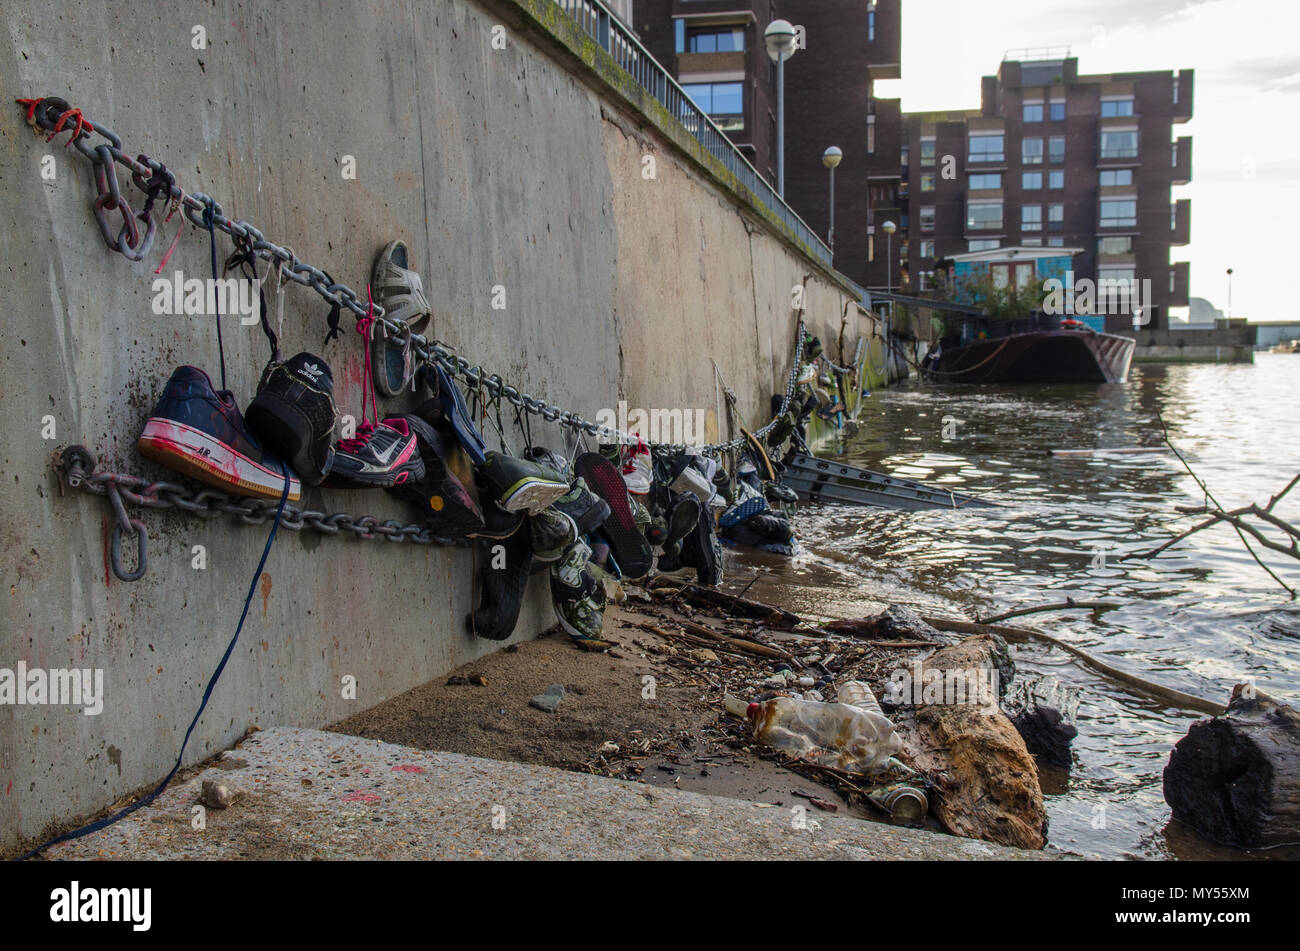 London, England, UK - January 14, 2014: Shoes found littering the tidal shores of the River Thames are strung up along the embankment of Battersea Riv - Stock Image